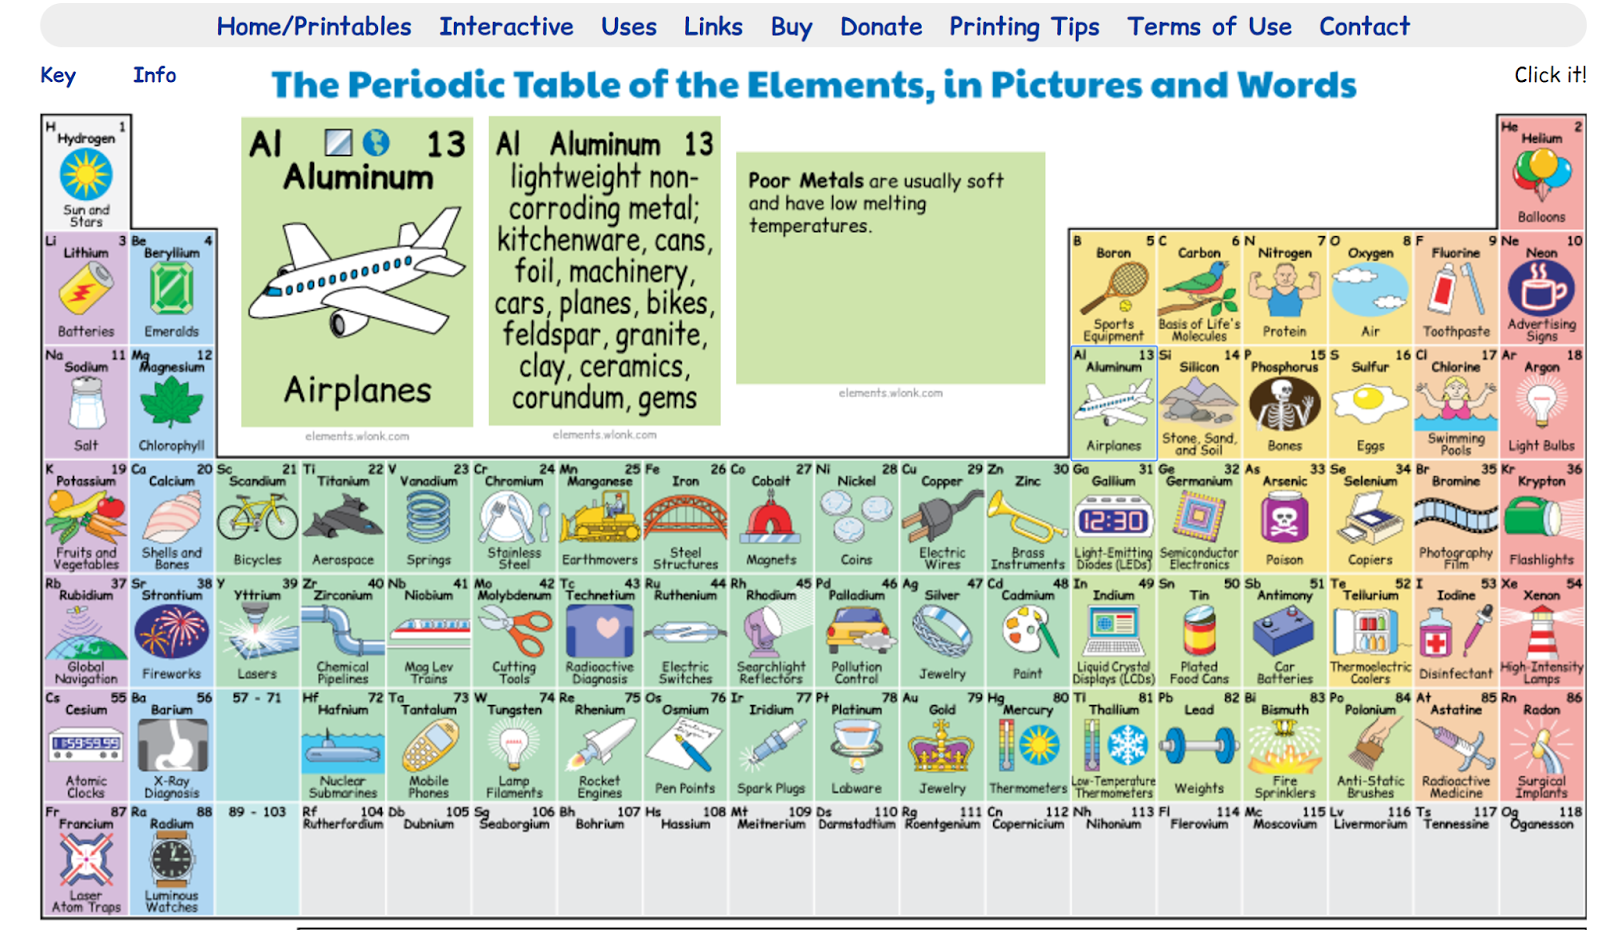 Free technology for teachers the periodic table in pictures and words the periodic table of elements in pictures and words could be a great resource for middle school science classrooms it also provides a nice model for an gamestrikefo Gallery